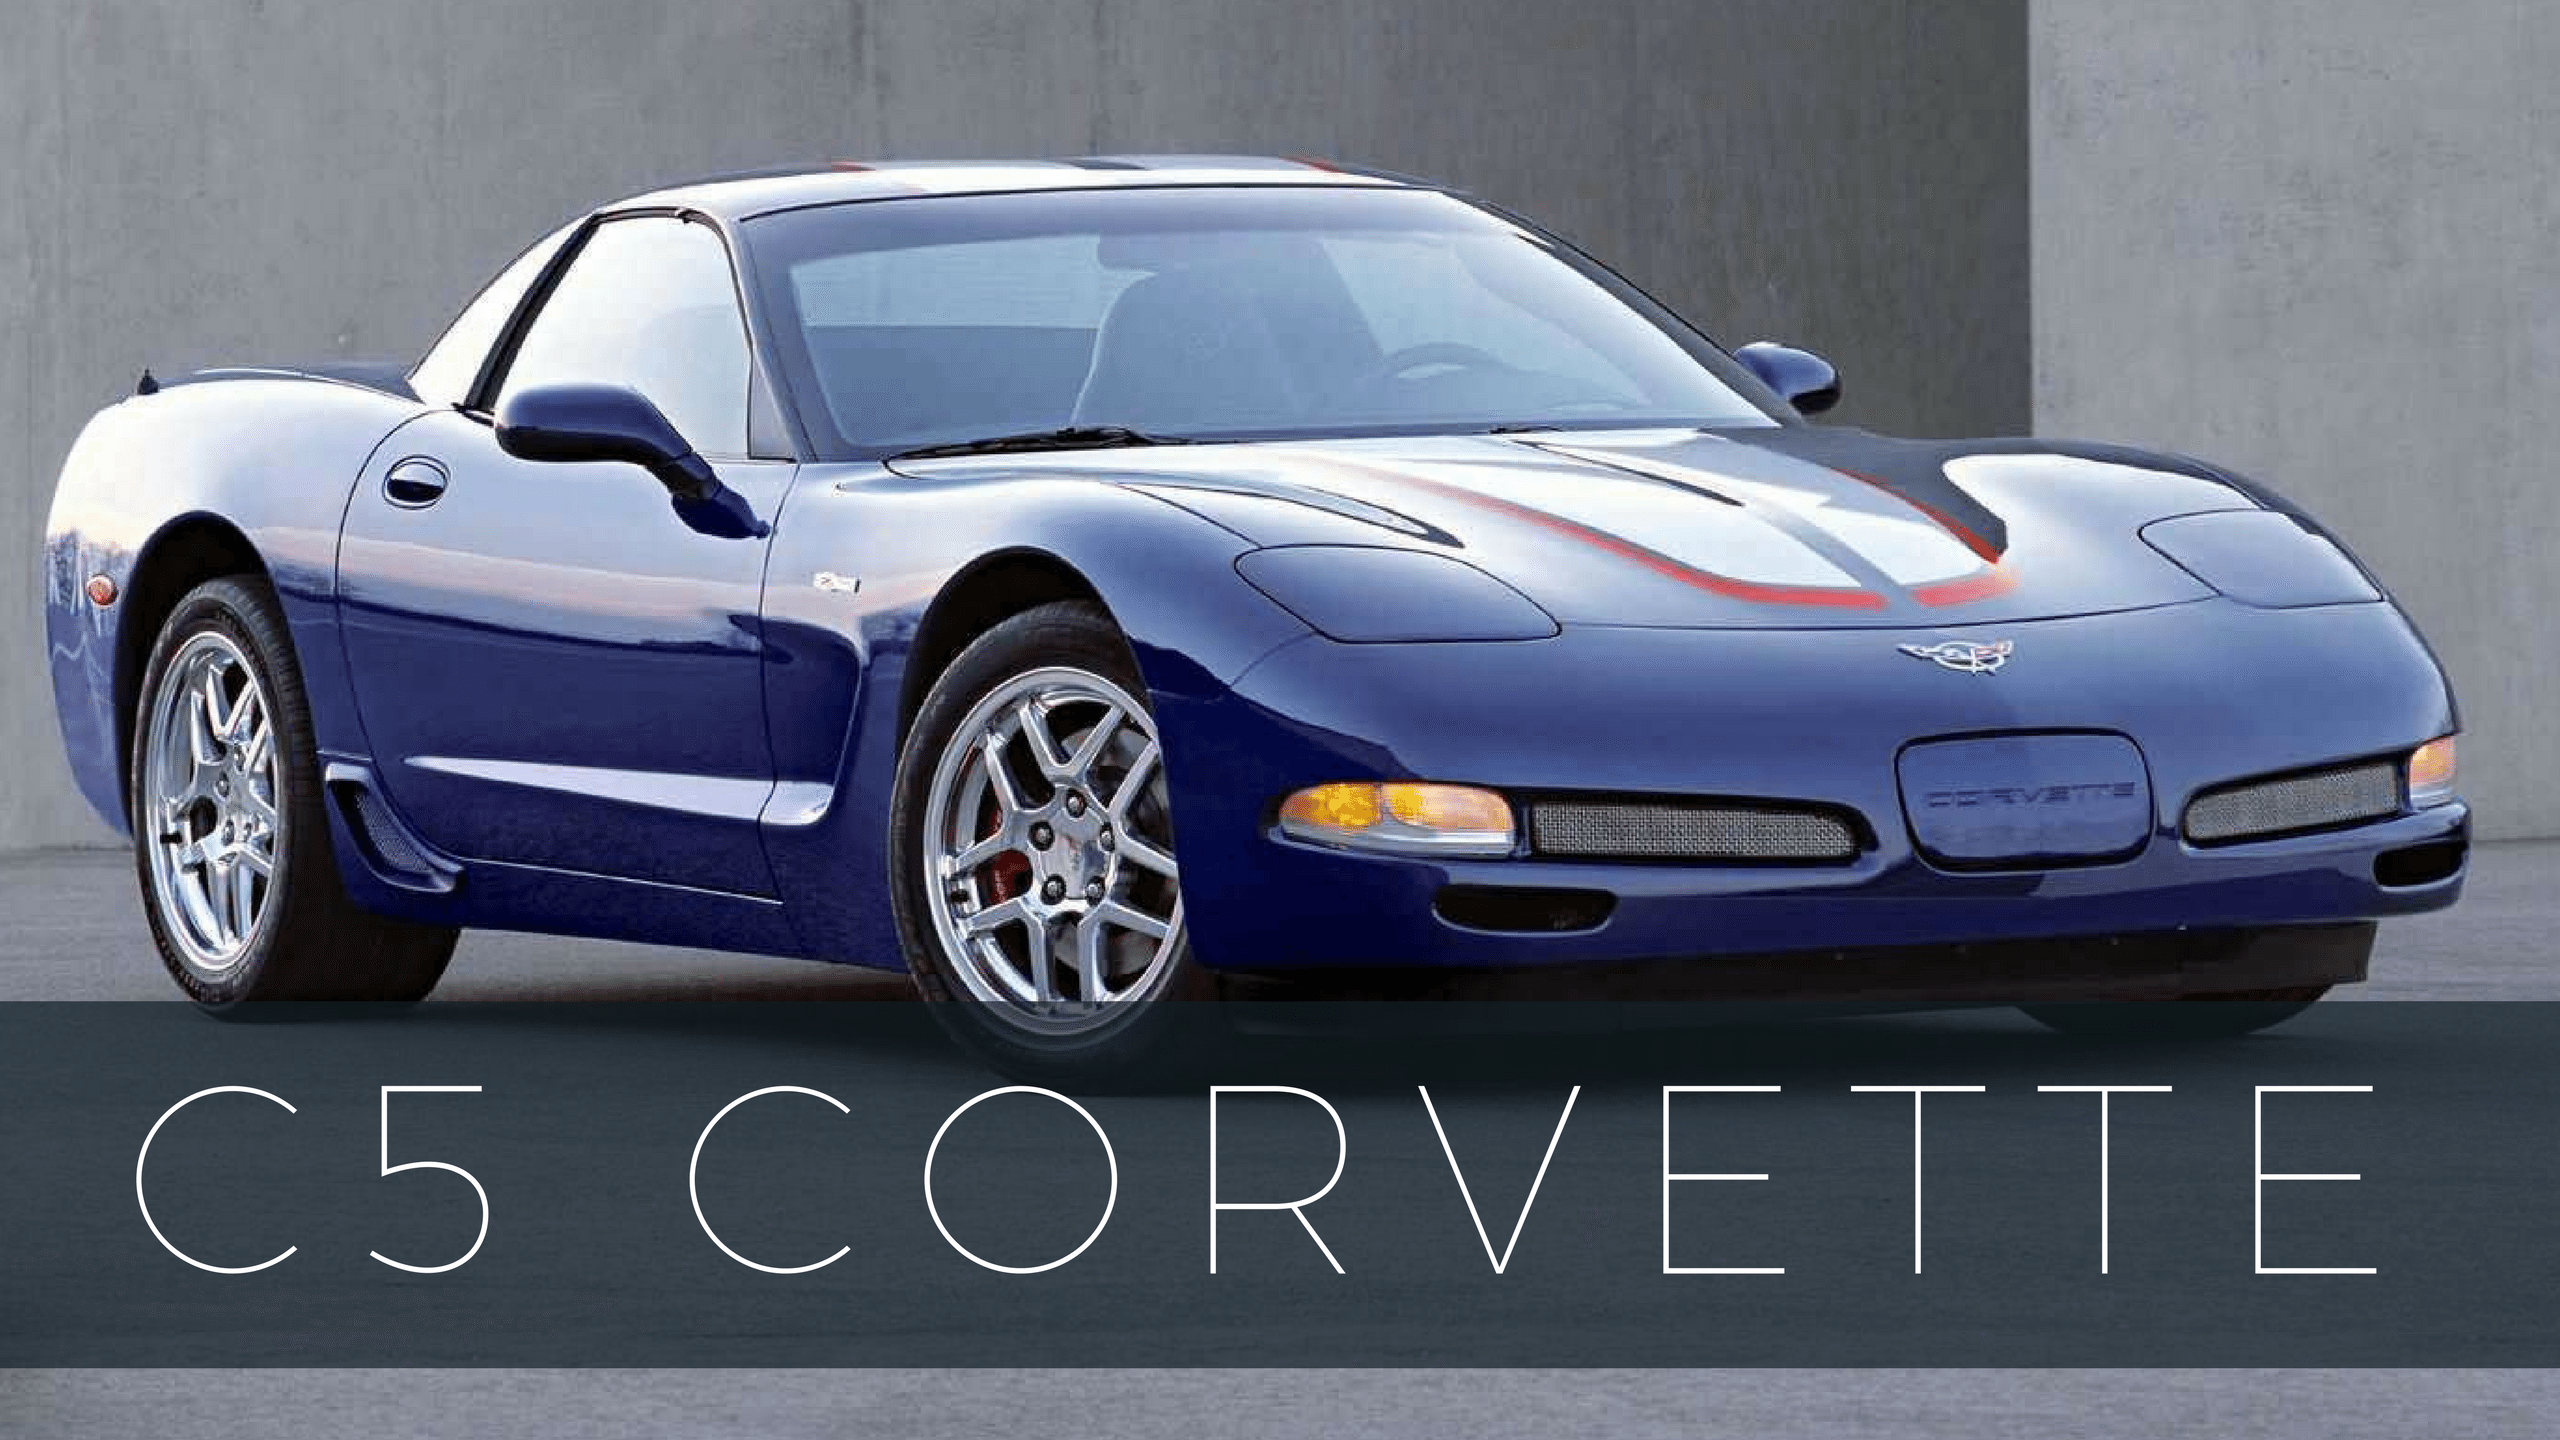 C5 Corvette Tile 2004 c5 corvette ultimate guide (overview, specs, vin info  at virtualis.co